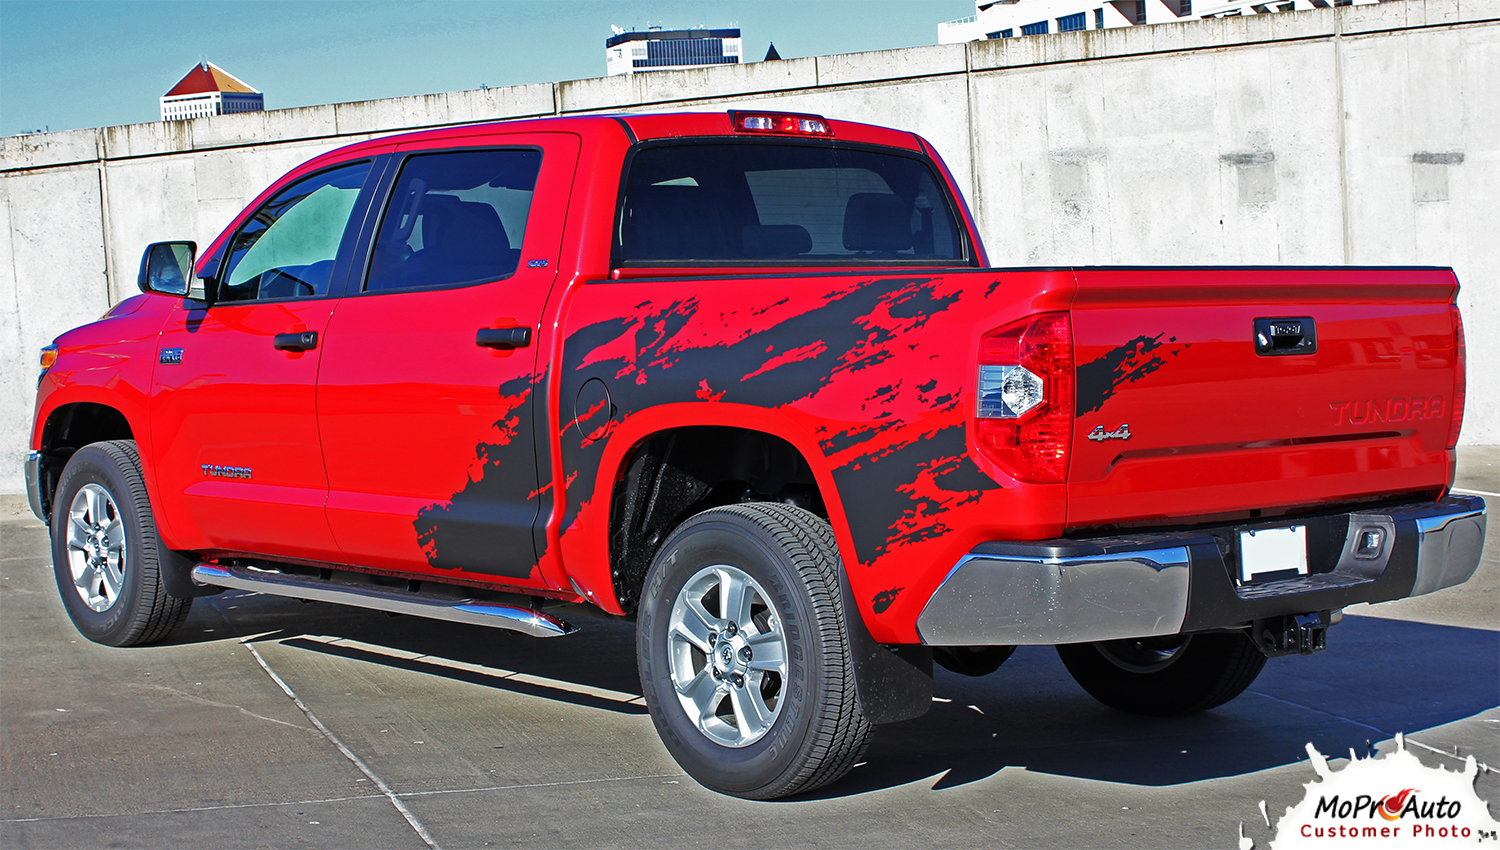 SHREDDER Toyota Tundra  Body Accent Striping Vinyl Graphic Decal Kit